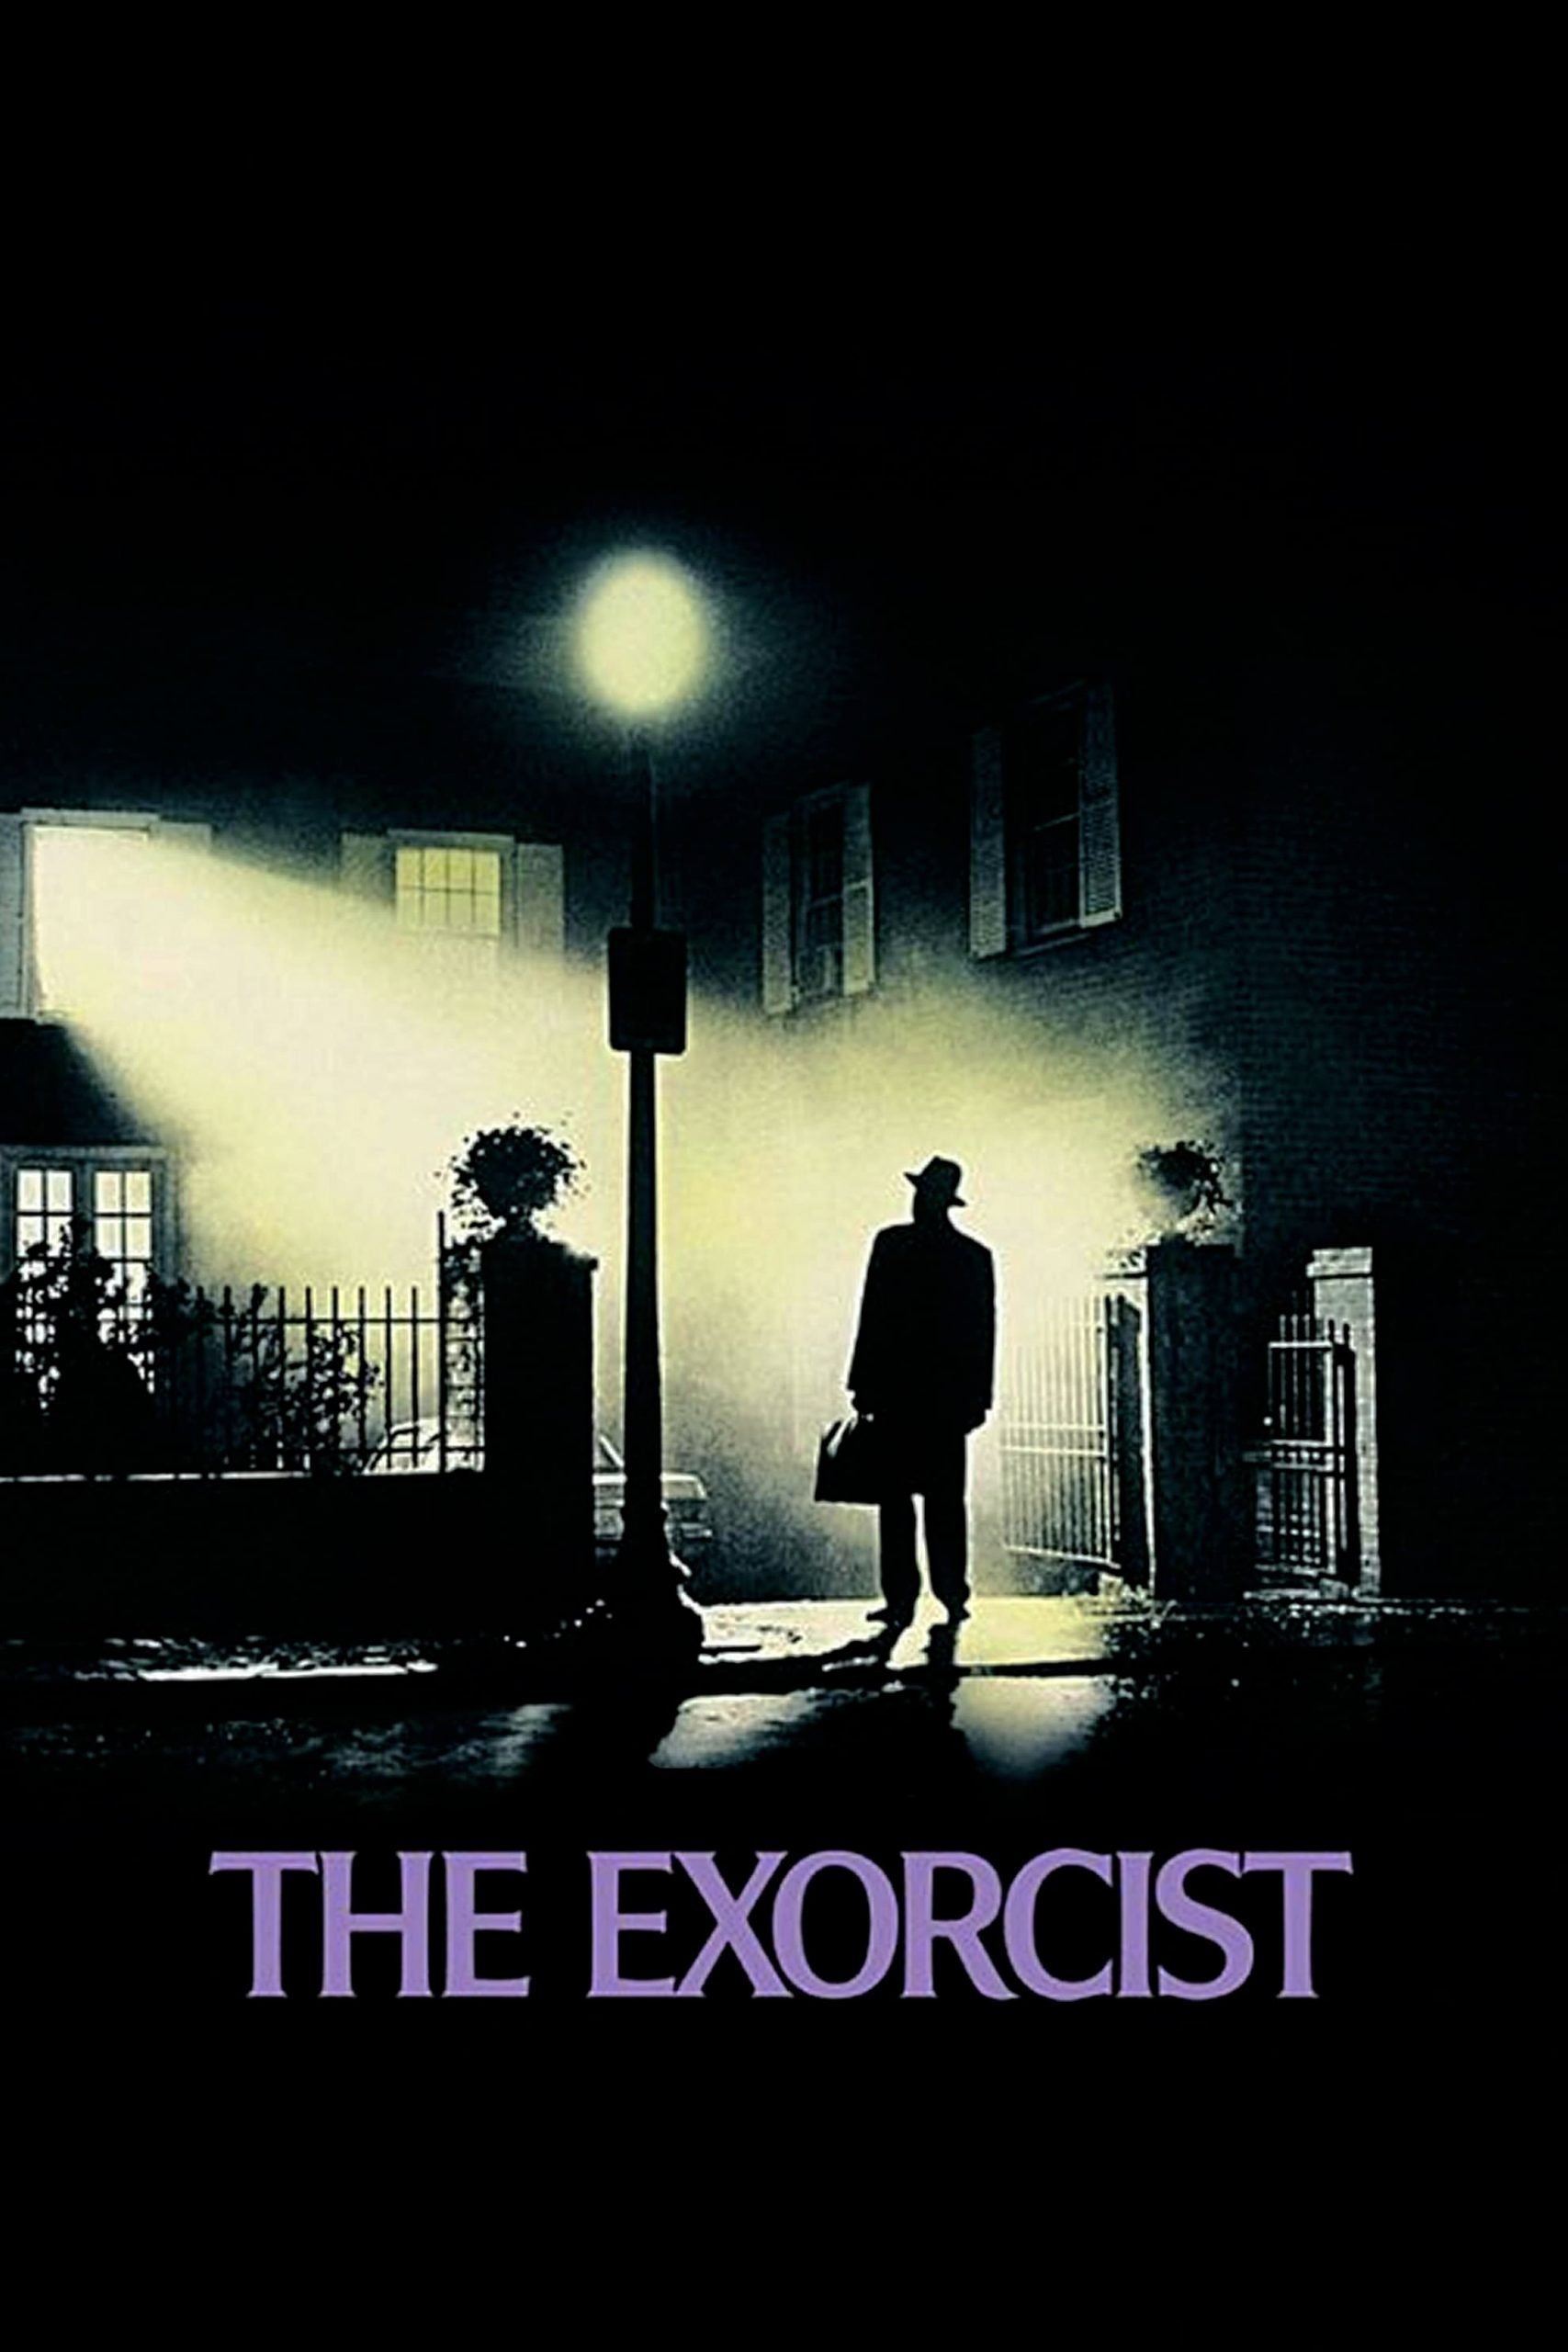 Poster for The Exorcist